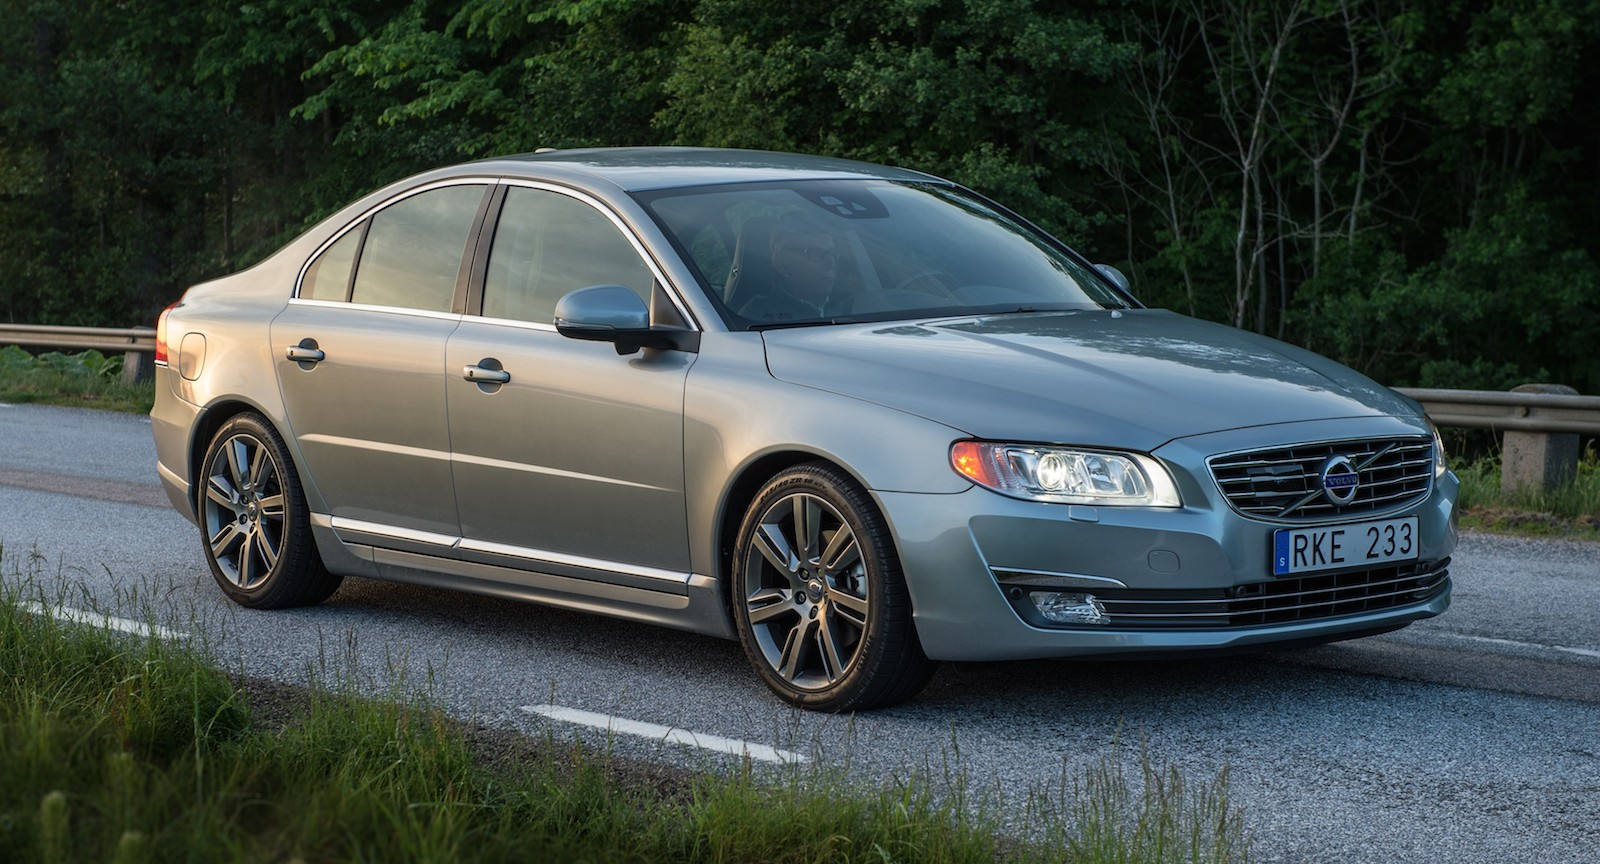 2015 Volvo S80 Review Ratings Specs Prices And Photos The Car Connection